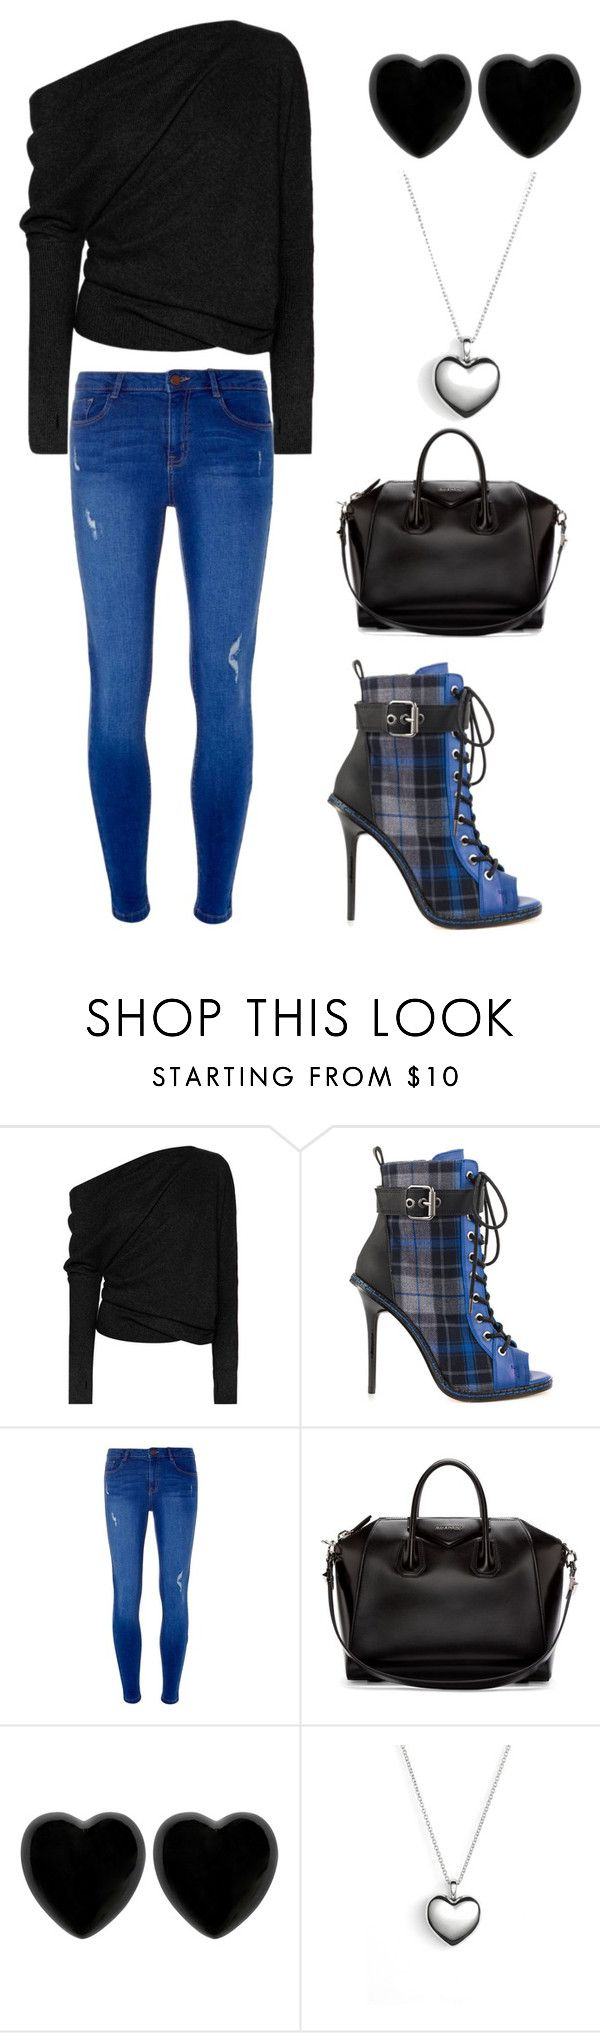 """Blue Black Love"" by alphashe on Polyvore featuring Tom Ford, GX, Dorothy Perkins, Givenchy, Dollydagger and Pandora"